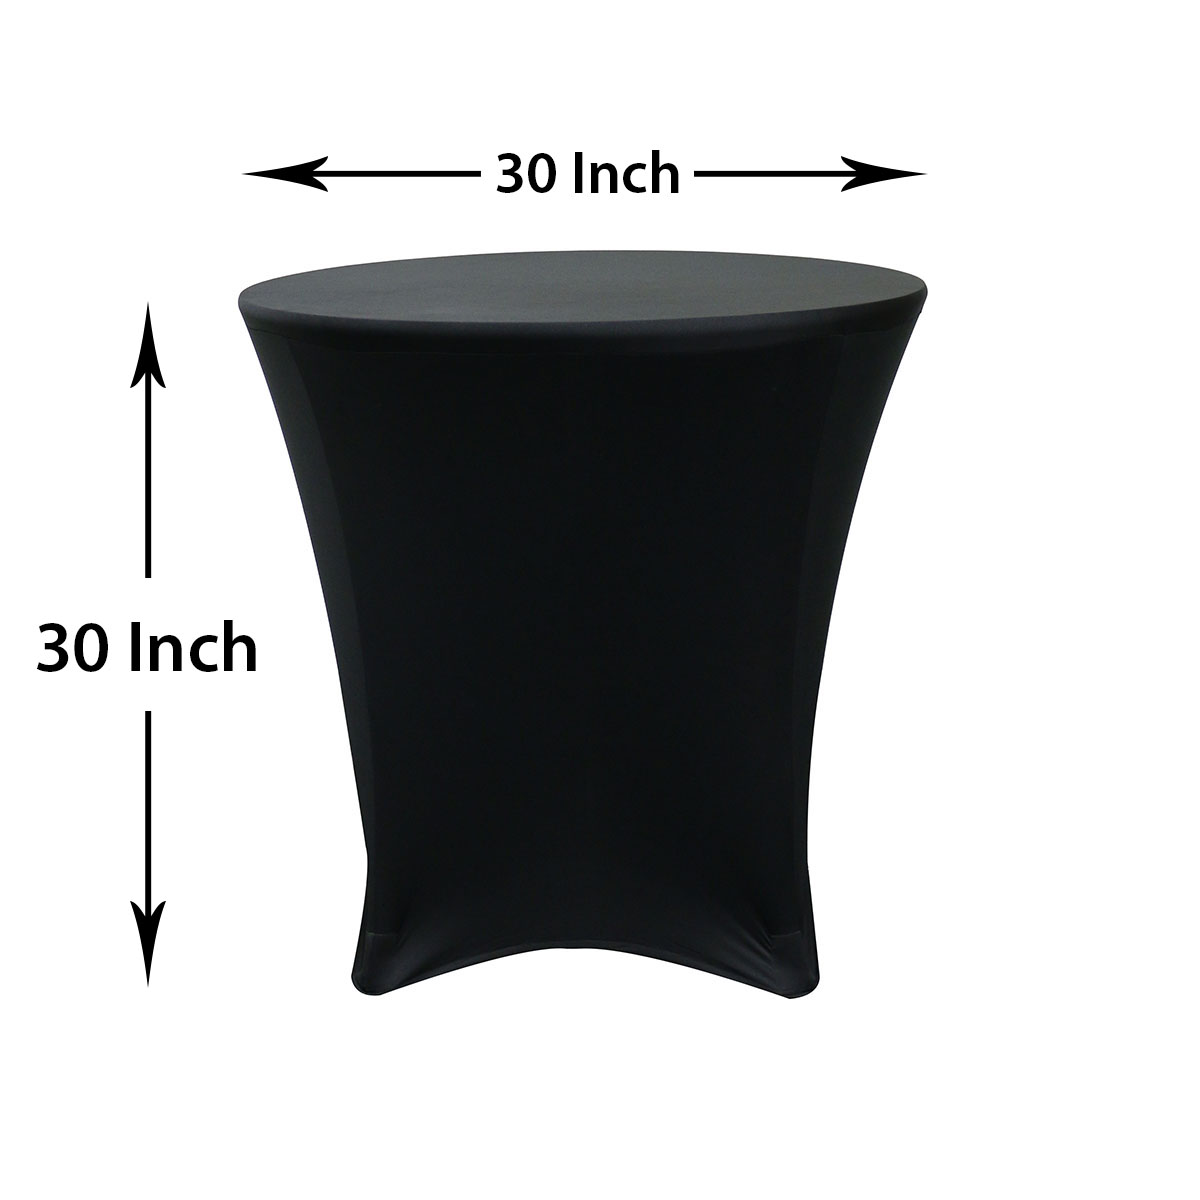 30-30-inch-lowboy-cocktail-spandex-table-covers-black-dimensions.jpg